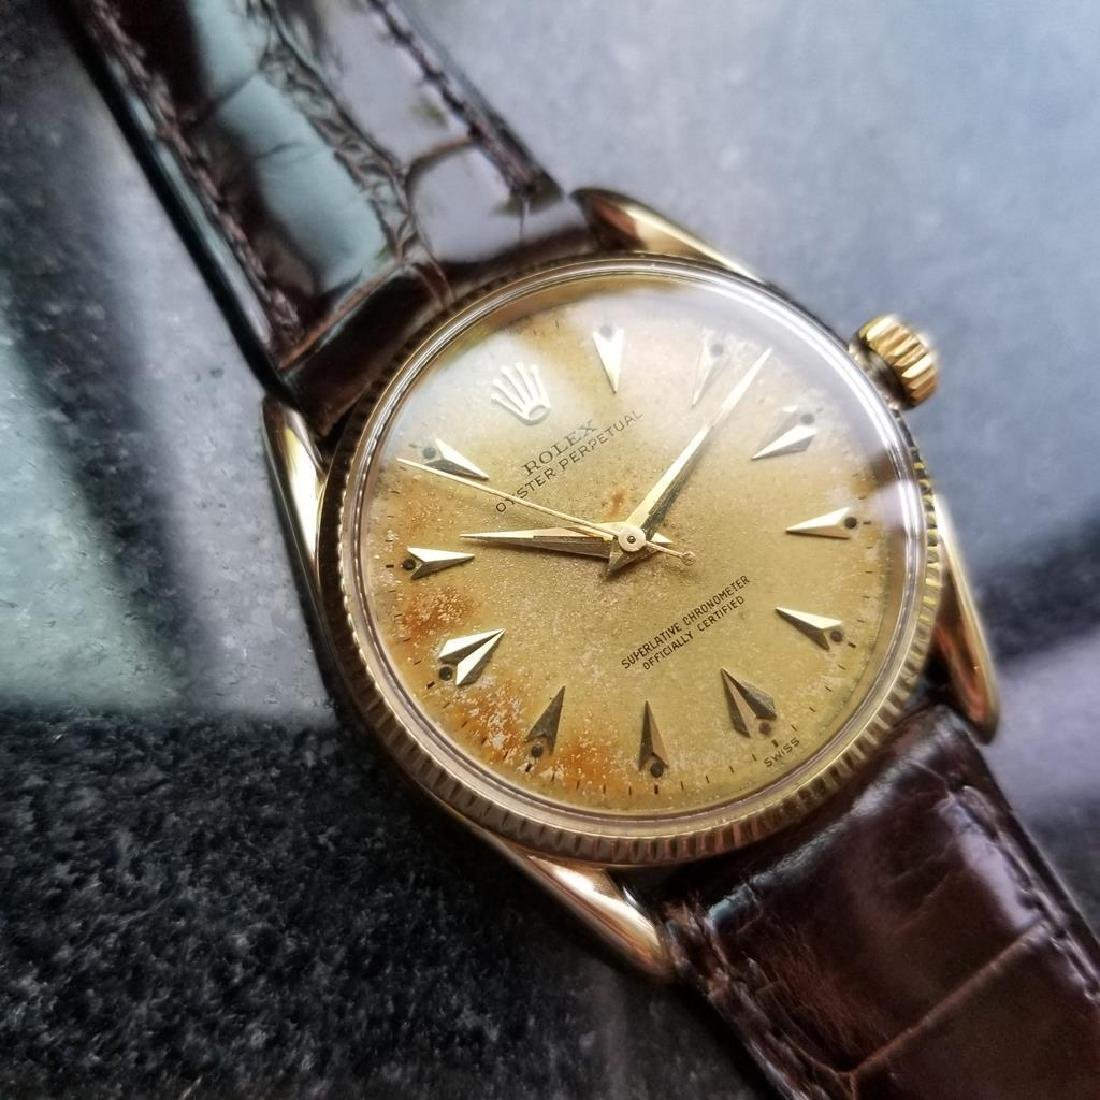 ROLEX Men's 14K Gold Oyster Perpetual 1011 Bombay - 3